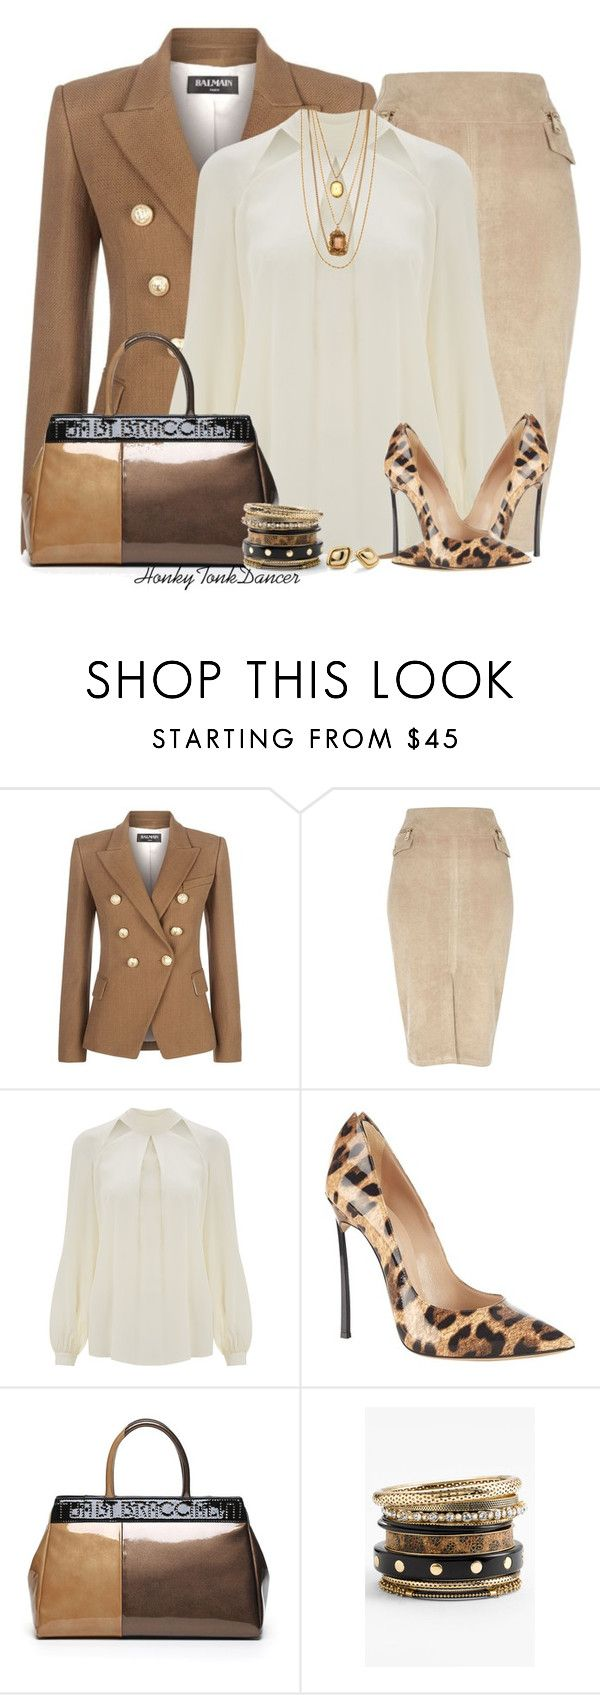 """""""Pop Of Leopard"""" by honkytonkdancer ❤ liked on Polyvore featuring Balmain, River Island, Temperley London, Casadei, Vintage Collection, Natasha Couture, Chico's, women's clothing, women and female"""